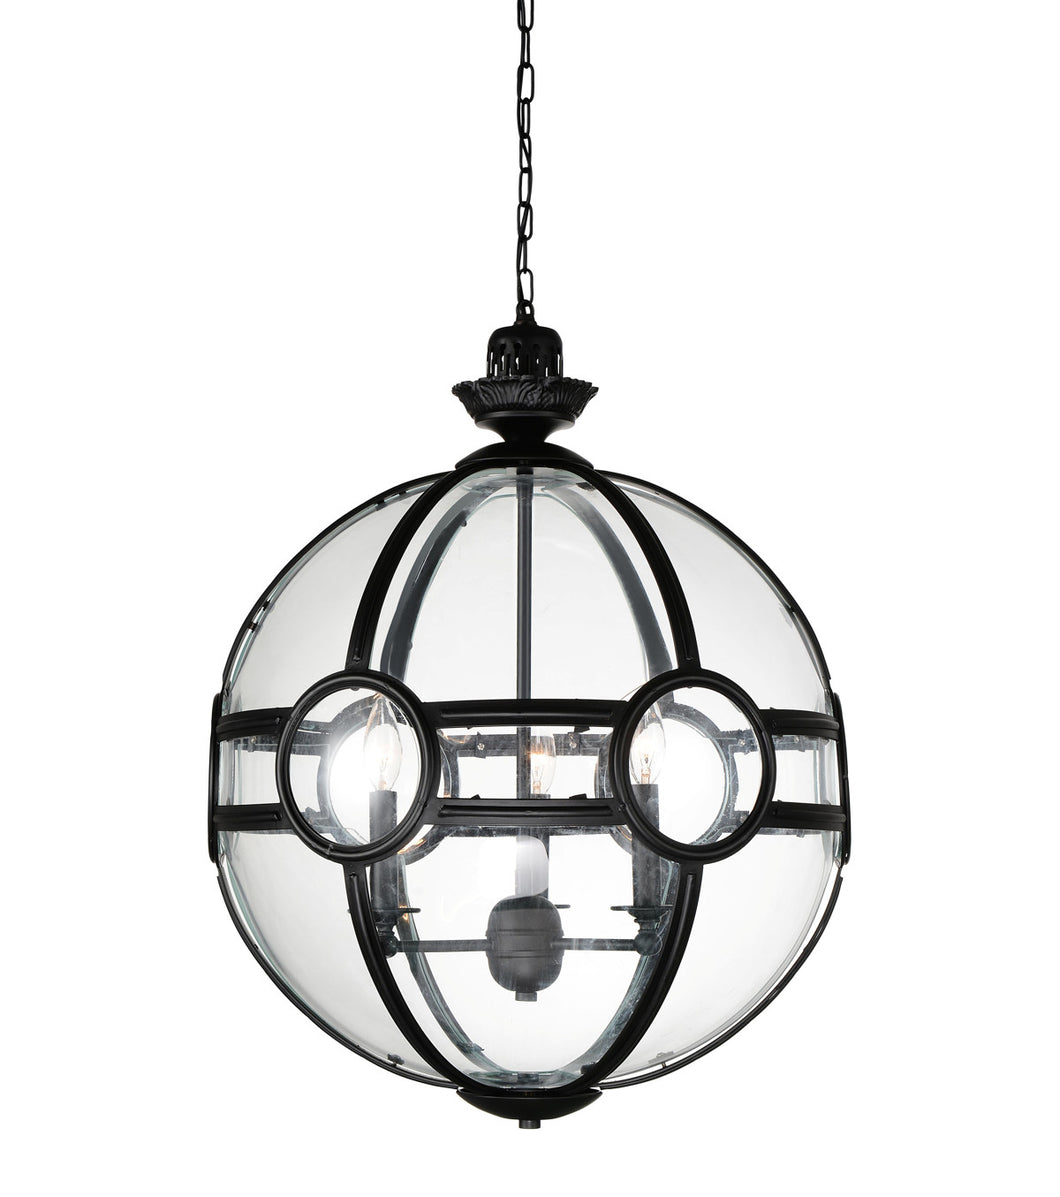 3 Light  Pendant with Black finish